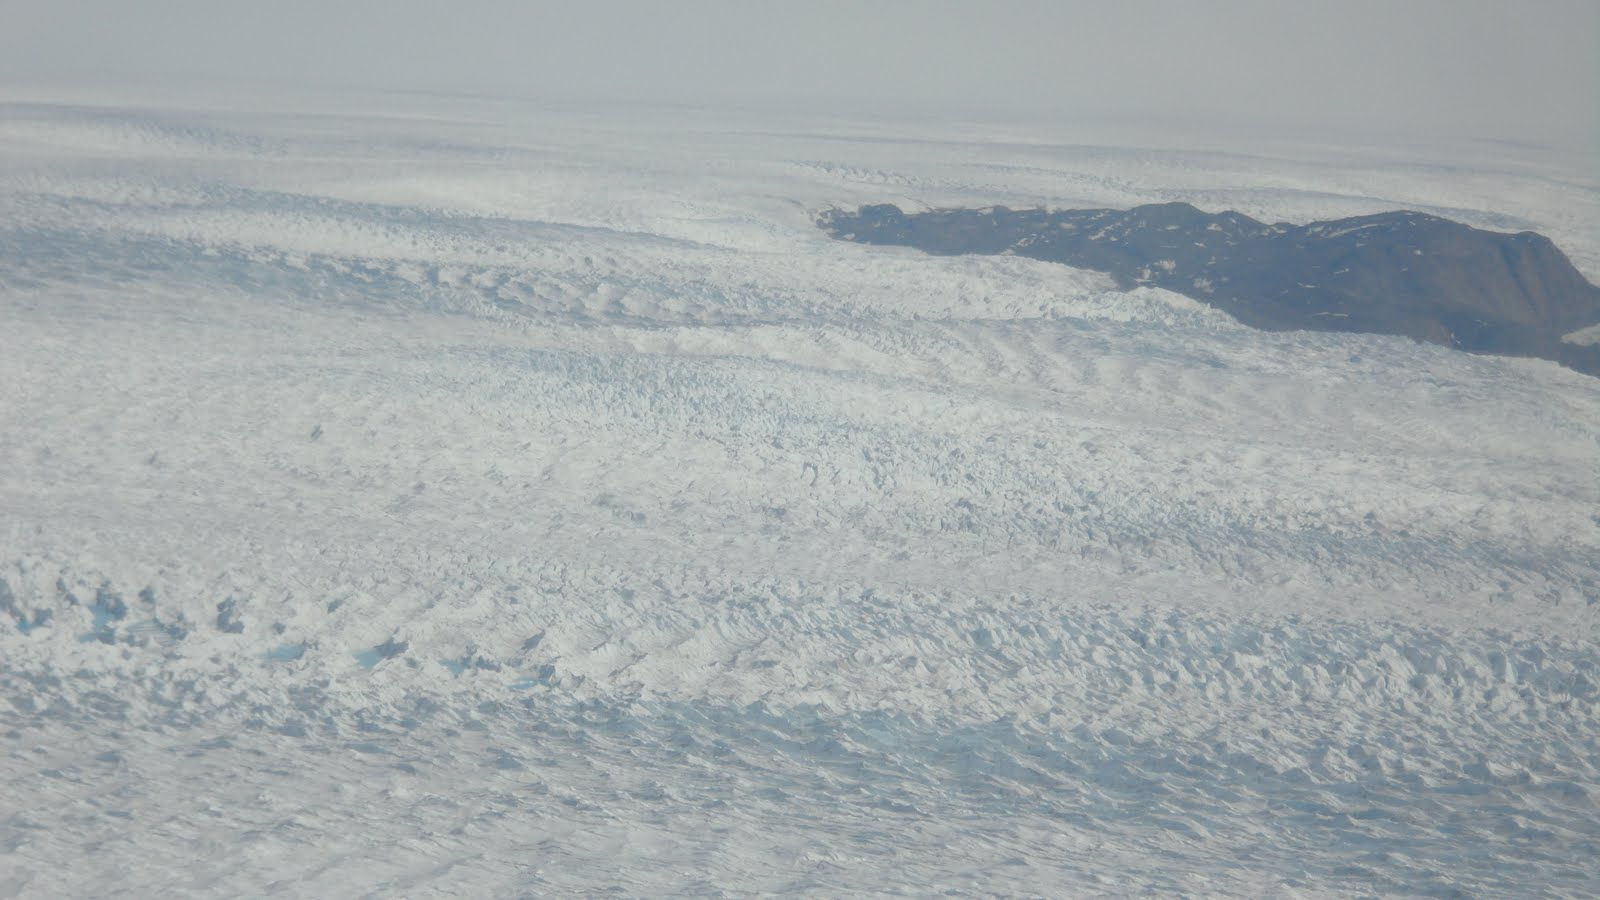 Another shot from plane. One lone mountain can be seen poking through the sea of ice.